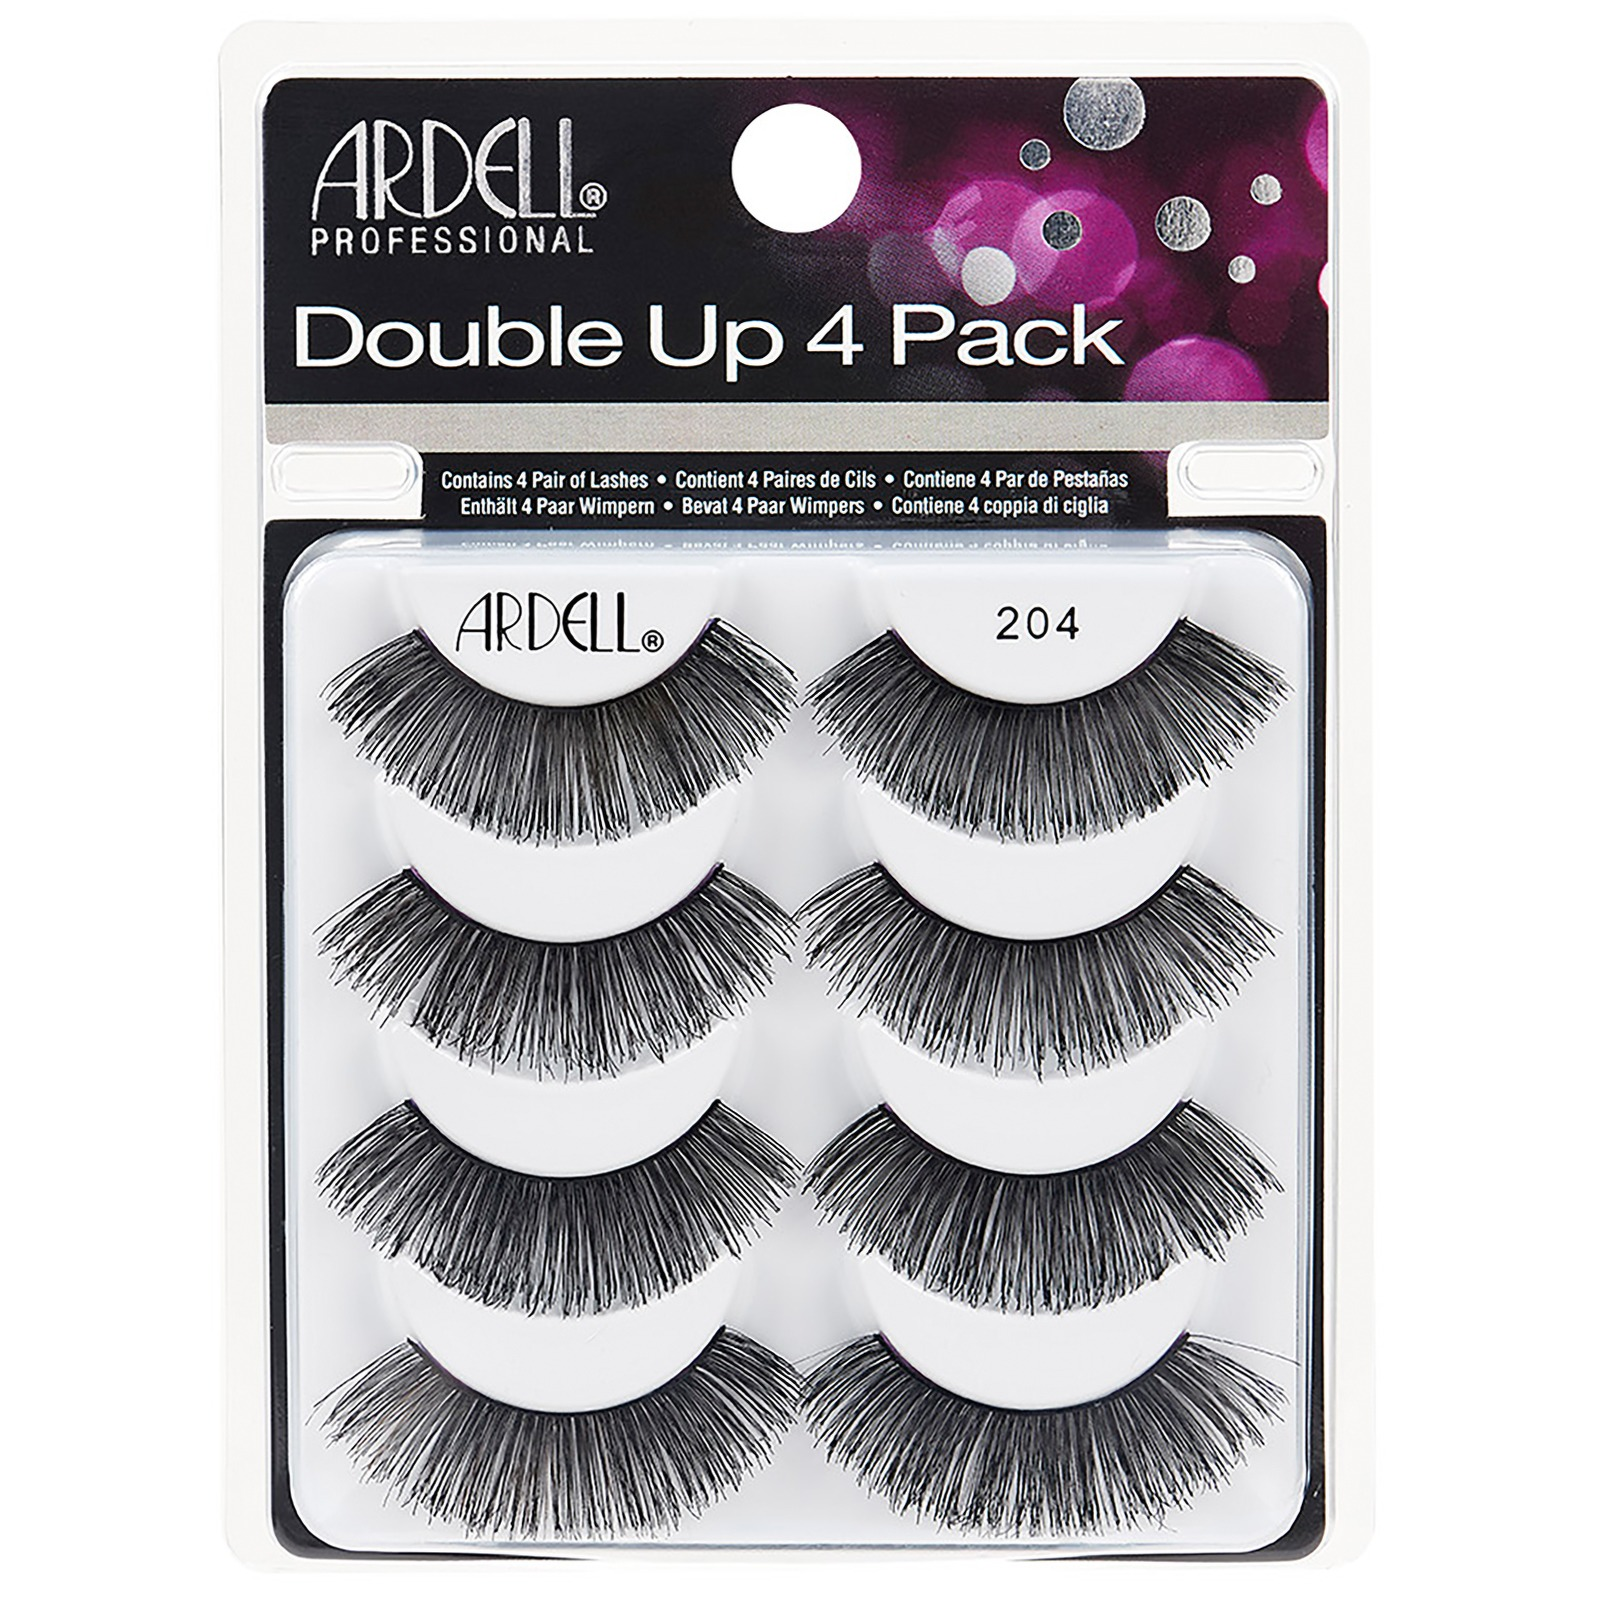 Ardell Multipack Double Up 204 Pack of 4 Pairs